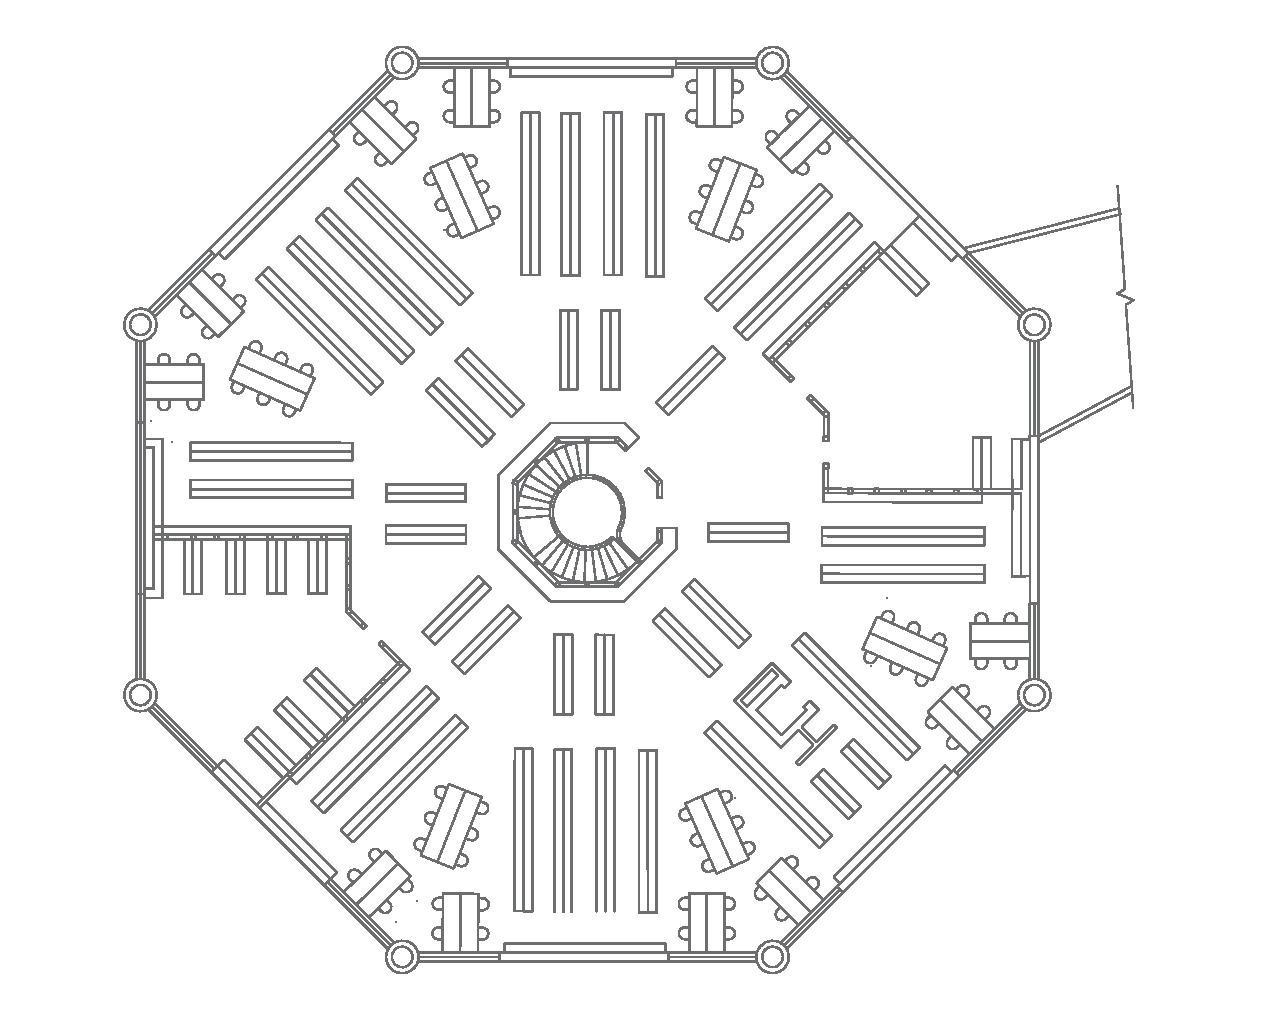 File:Plan of MacFarland Library, Ormond College.pdf